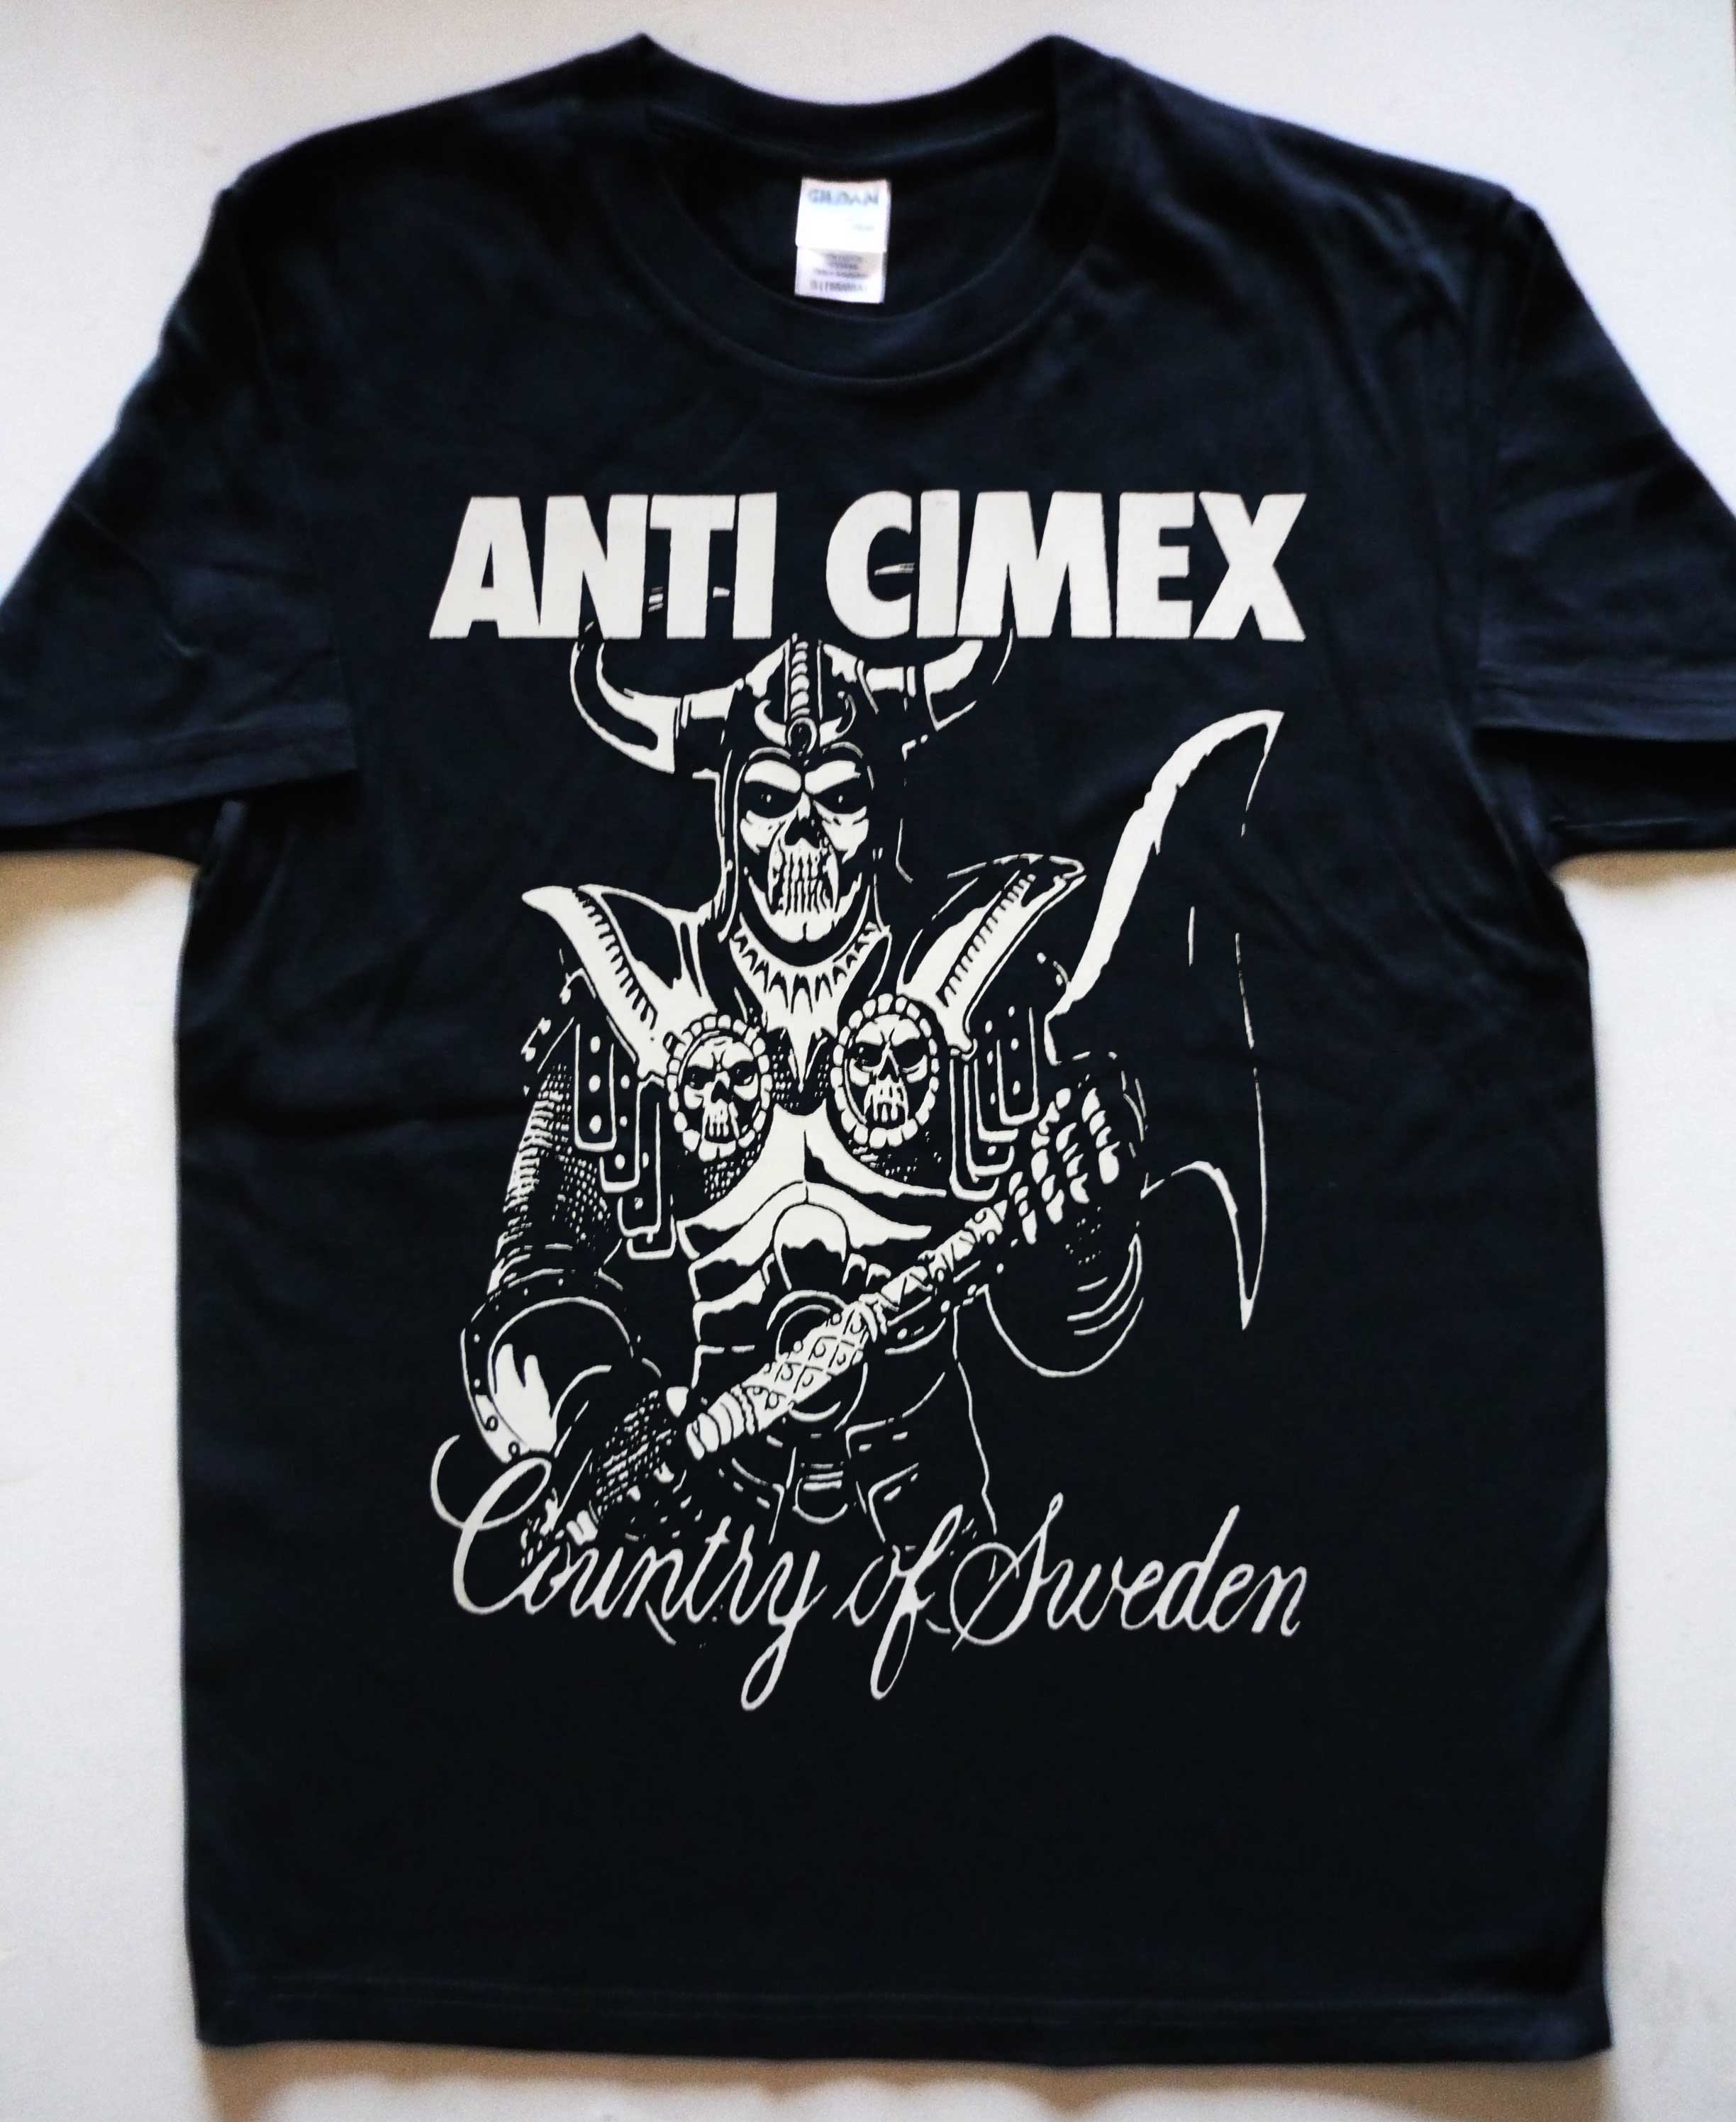 Anti Cimex Absolut Country T Shirt Black Seeds Records Merch Online Store Powered By Storenvy